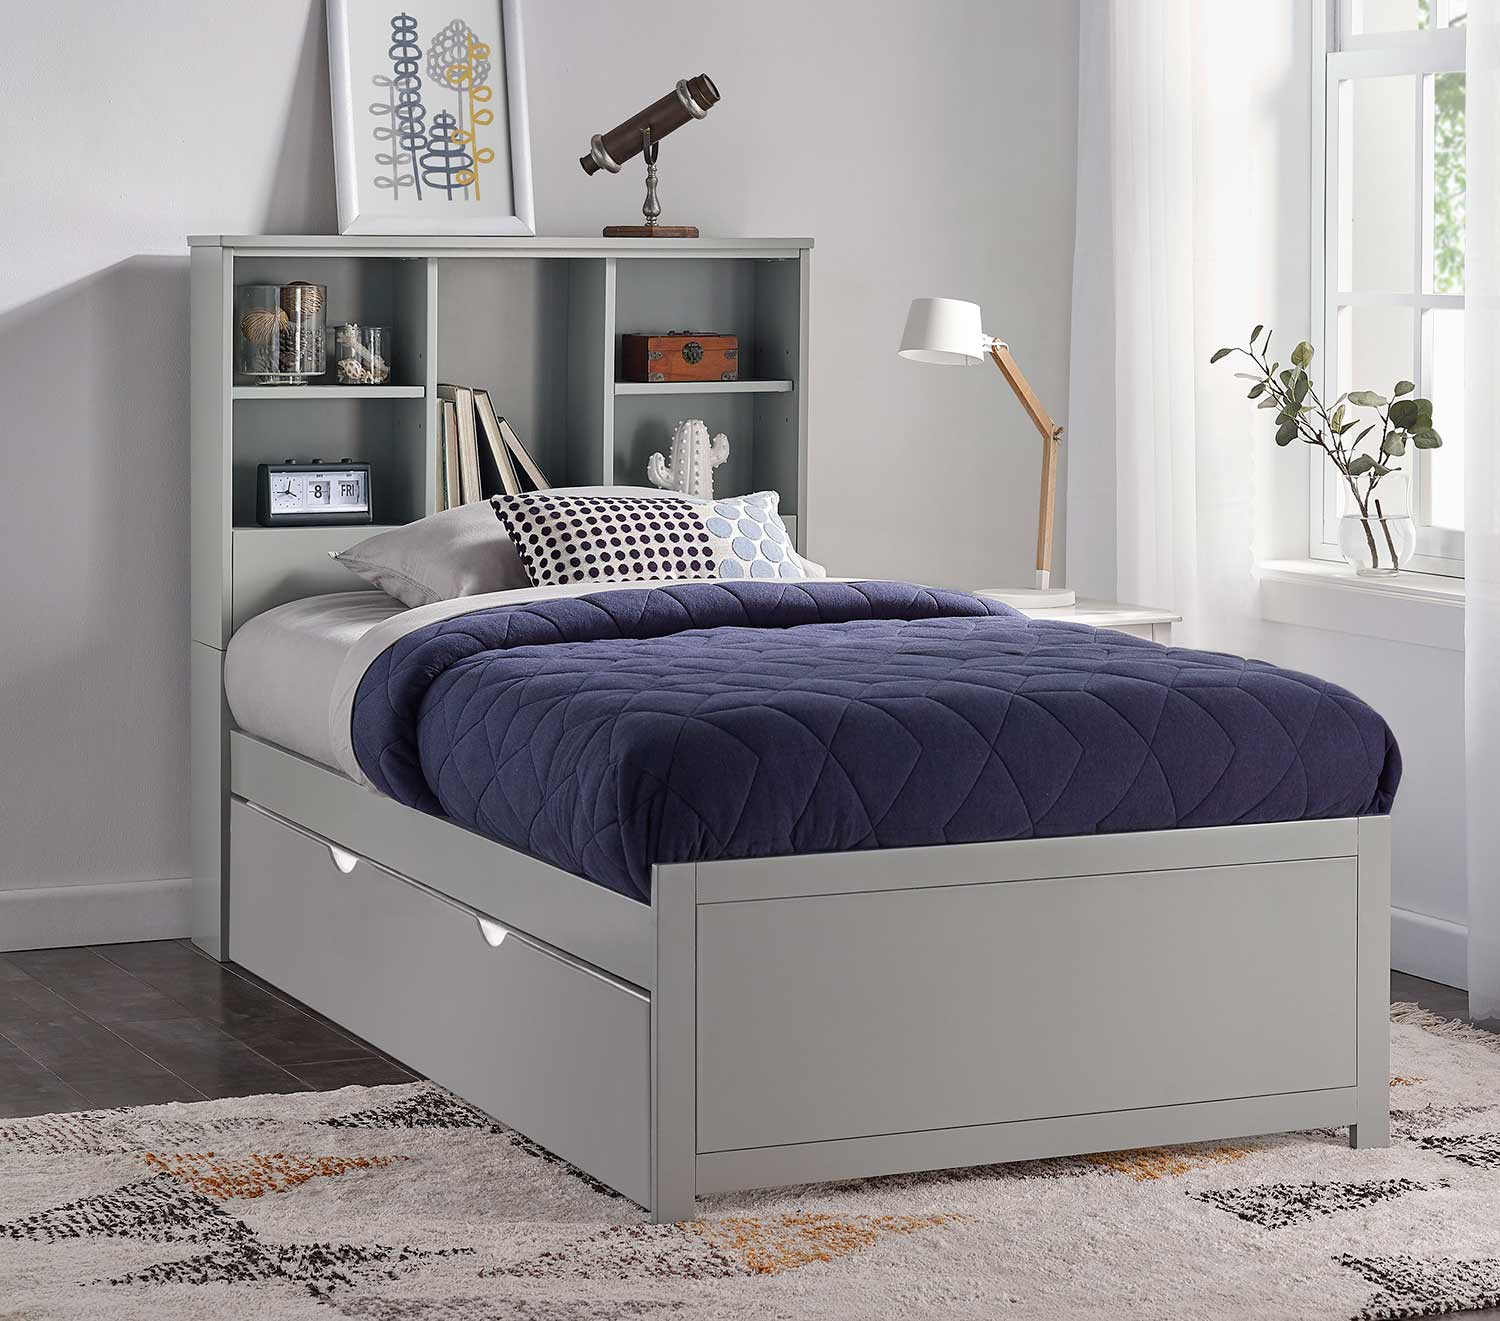 Hillsdale Caspian Twin Bookcase Bed with Trundle Unit - Gray